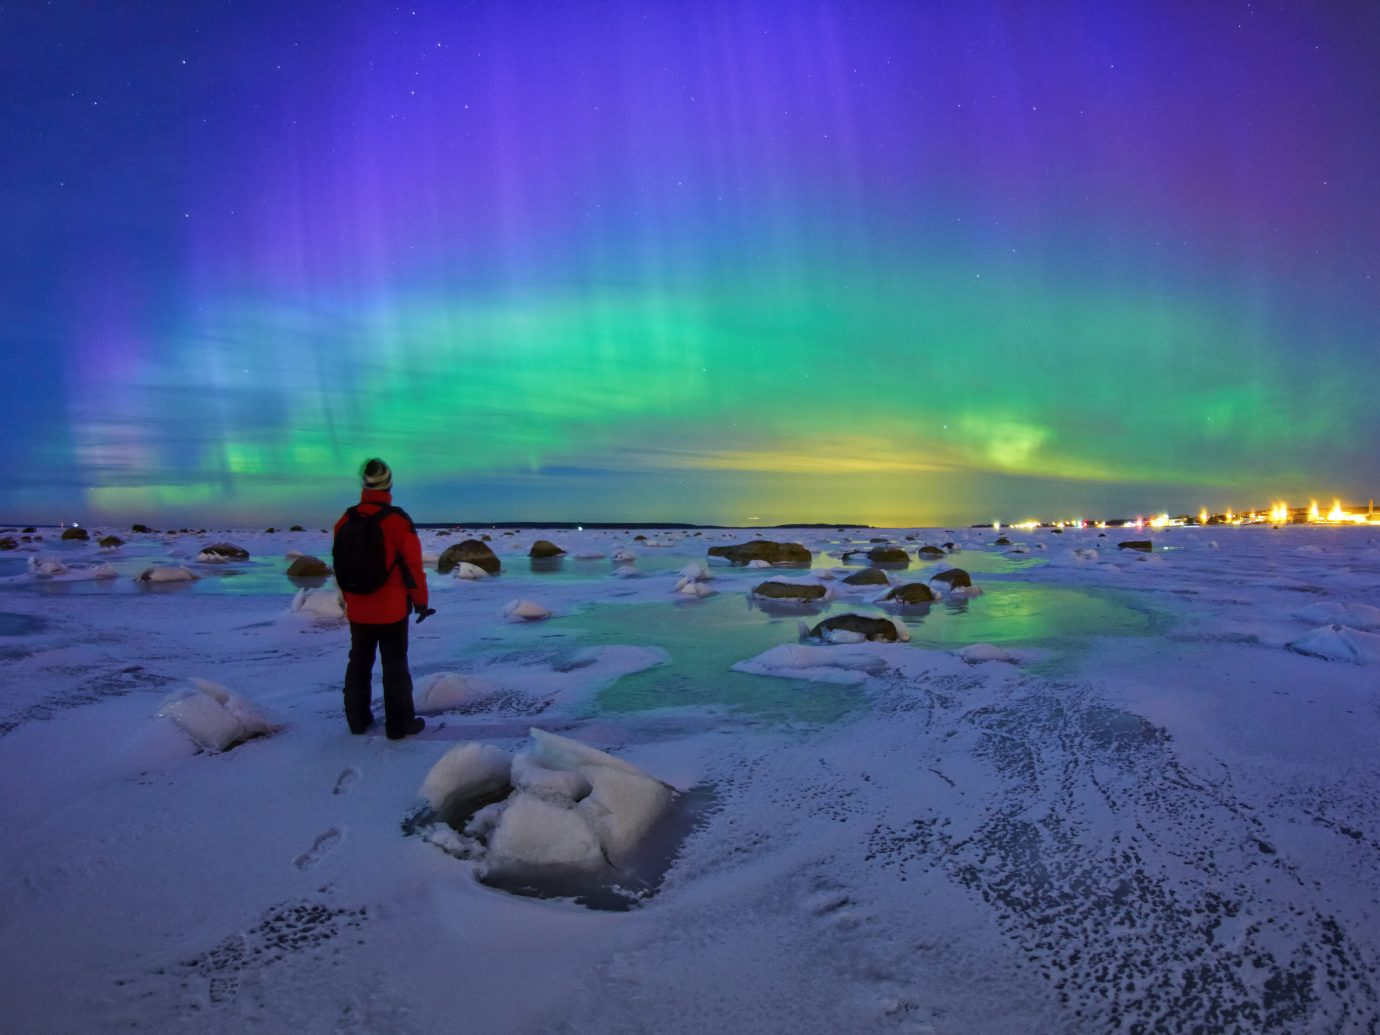 Offbeat water aurora weather atmosphere Nature arctic ice wave